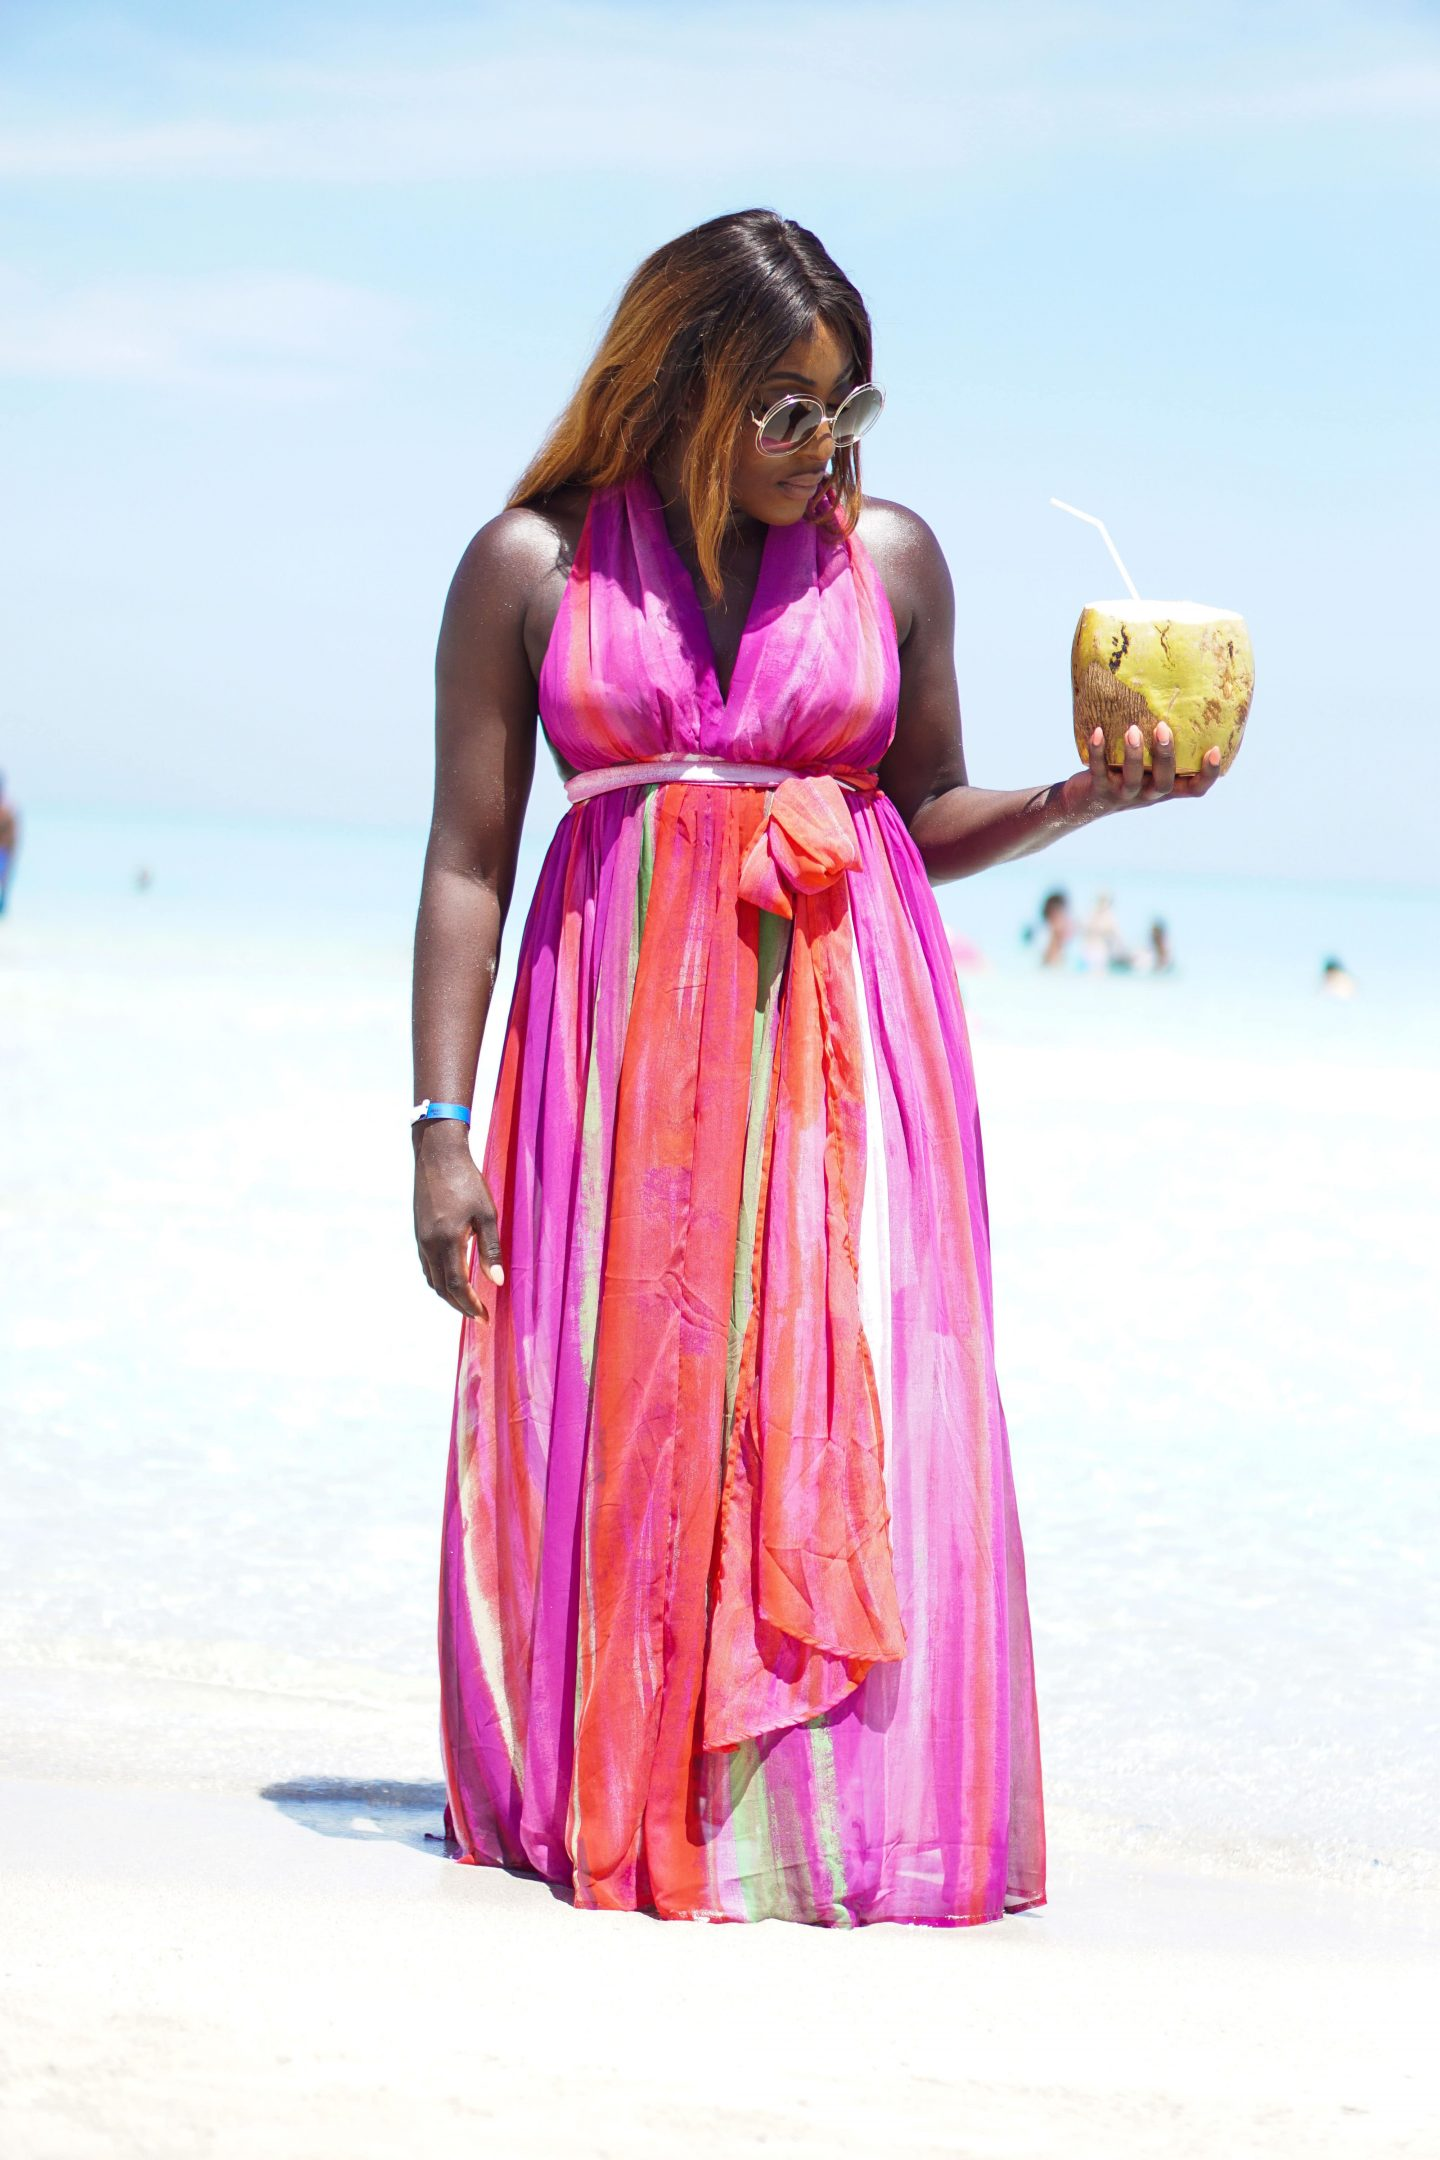 Varadero, Beach Dresses & Chloé Sunglasses - ASOS Beach Dress - Style and the Sass